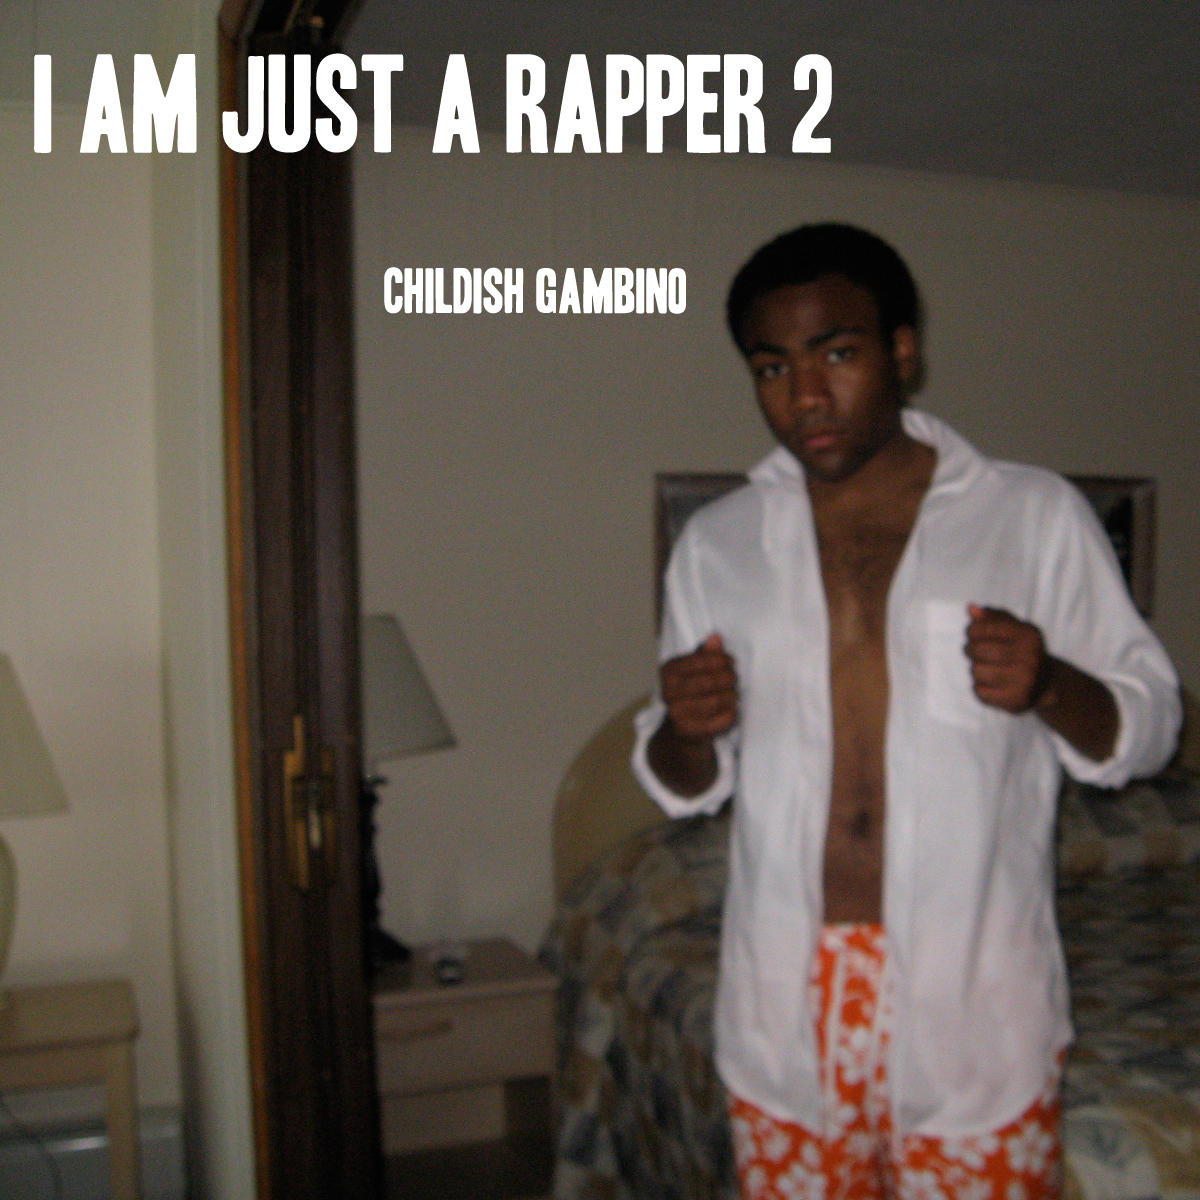 Index of /music/Childish Gambino - I am Just a Rapper 2